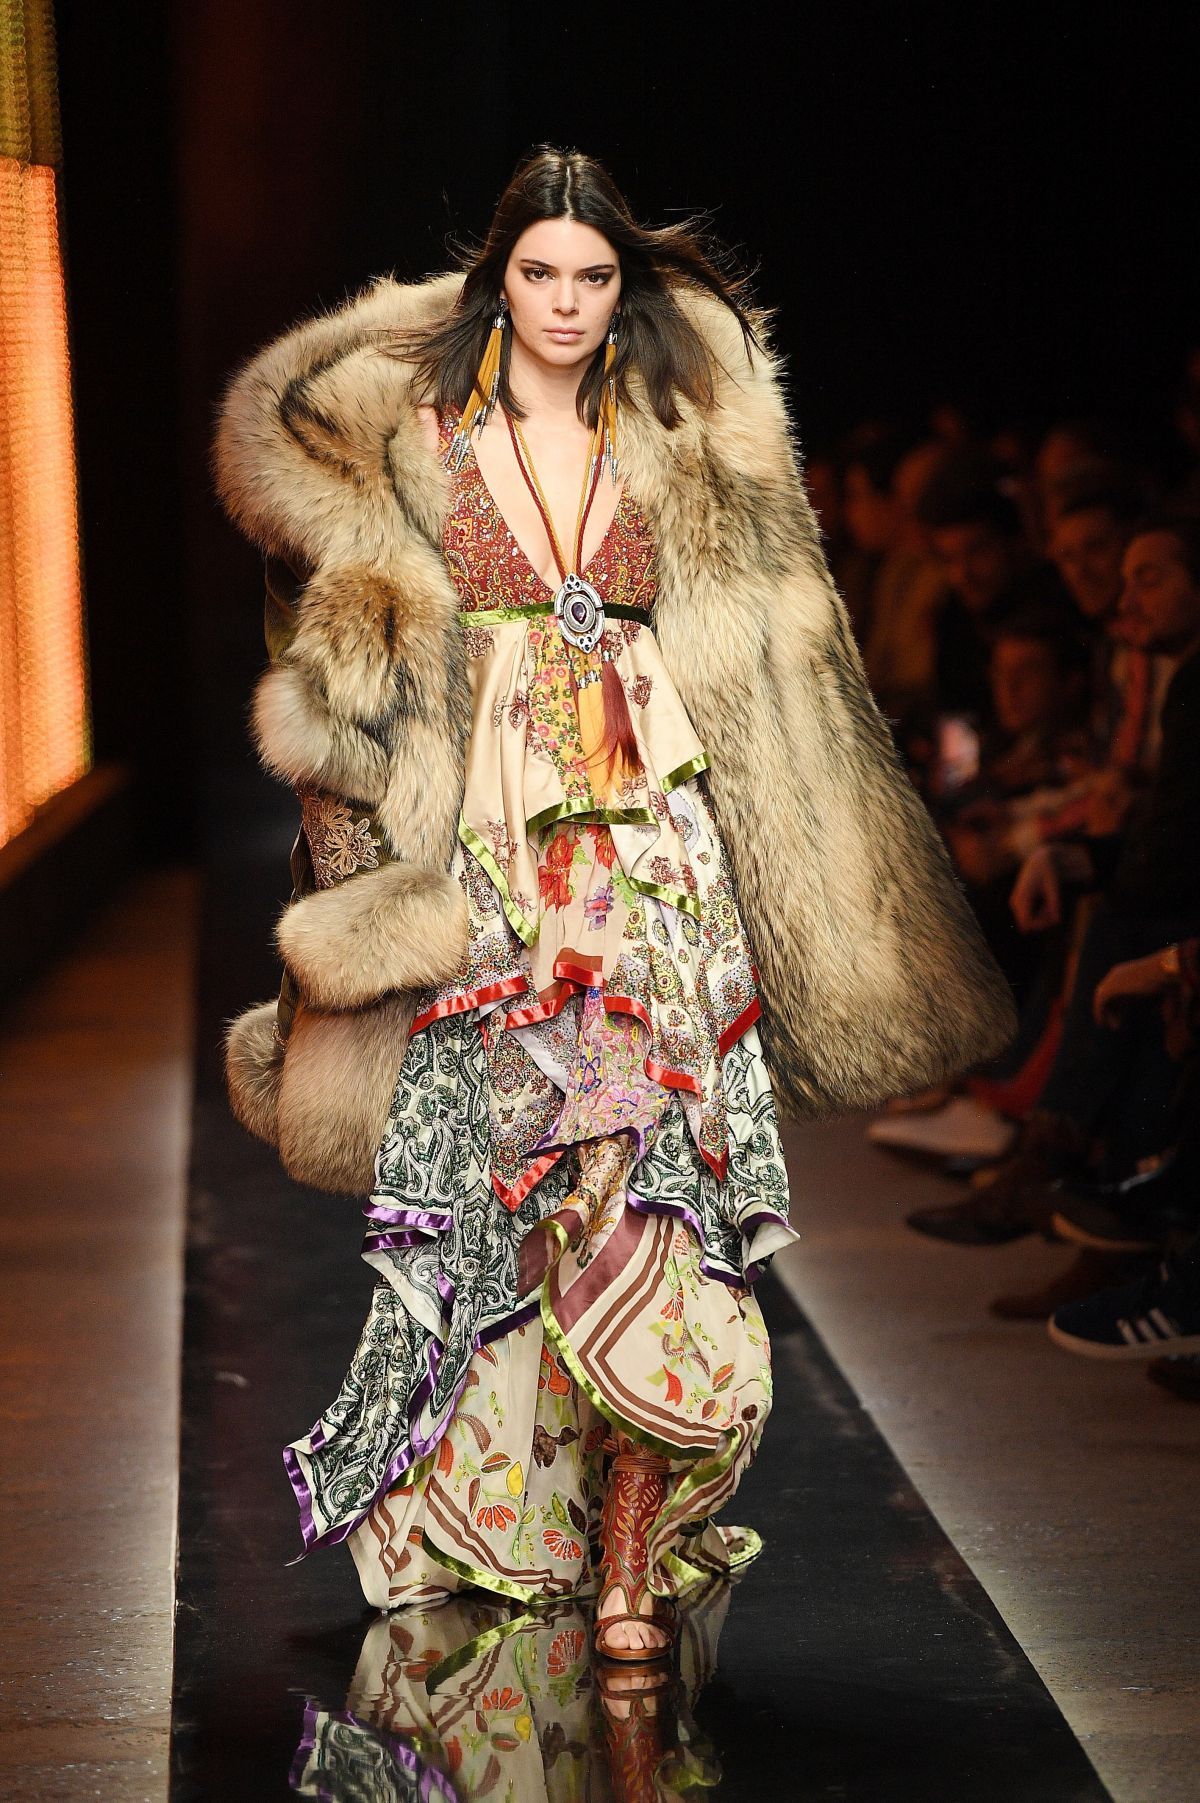 Fashion Show Coloring Pages For Adults: KENDALL JENNER At Dsquared2 Fashion Show In Milan Men's